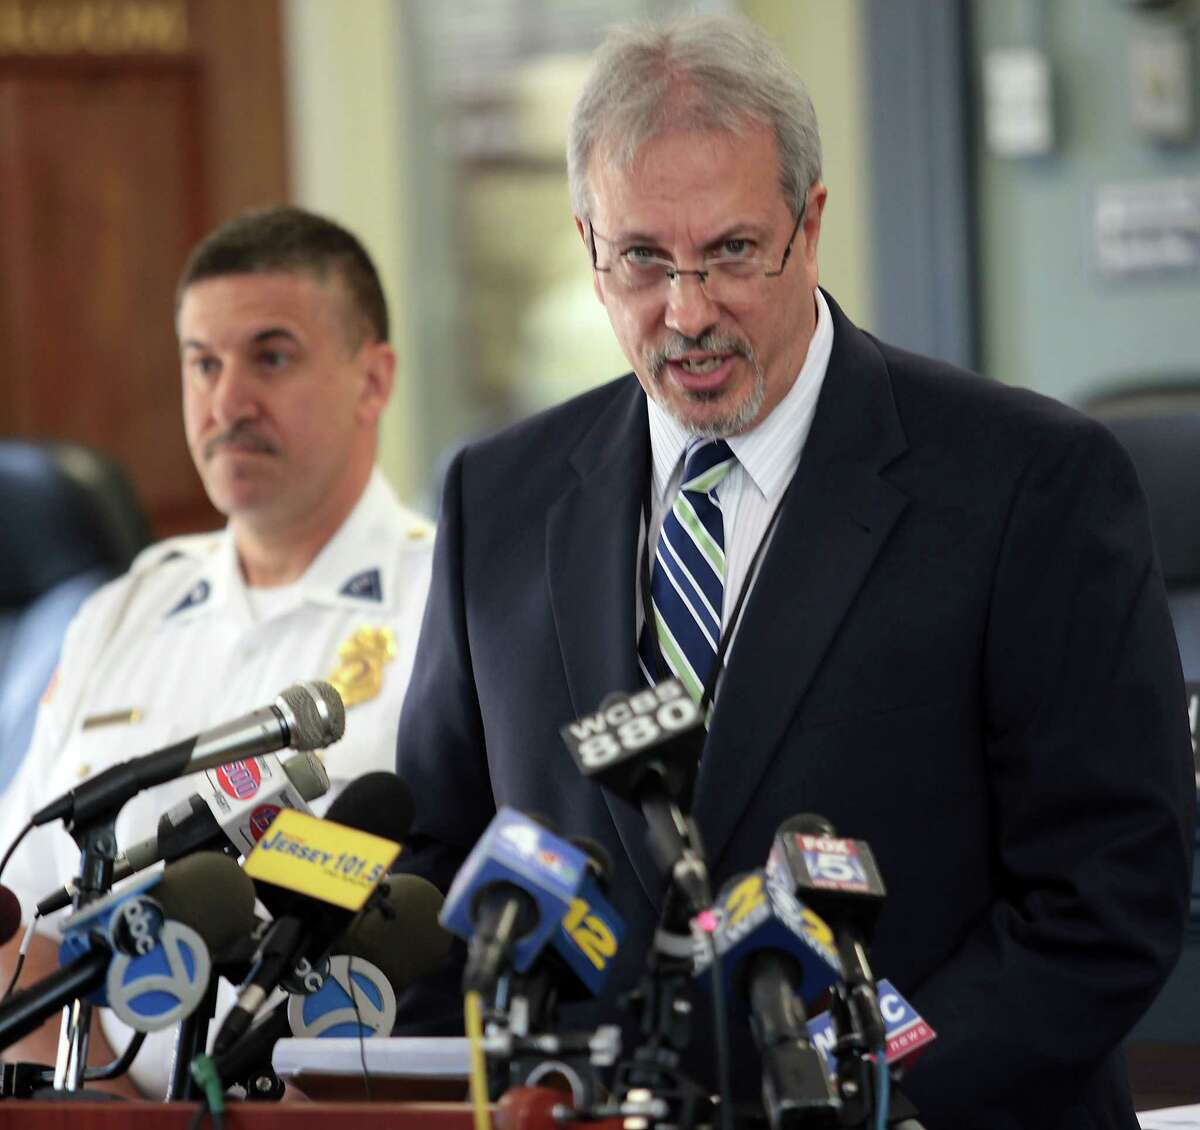 Larry Ragonese, New Jersey Department of Environmental Protection spokesperson, answers questions during a press conference at the West Milford Town Hall Monday, Sept. 22, 2014, regarding a fatal bear attack that occurred at the Apshawa Preserve Sunday afternoon that took the life of 22-year-old Darsh Patel of Edison.